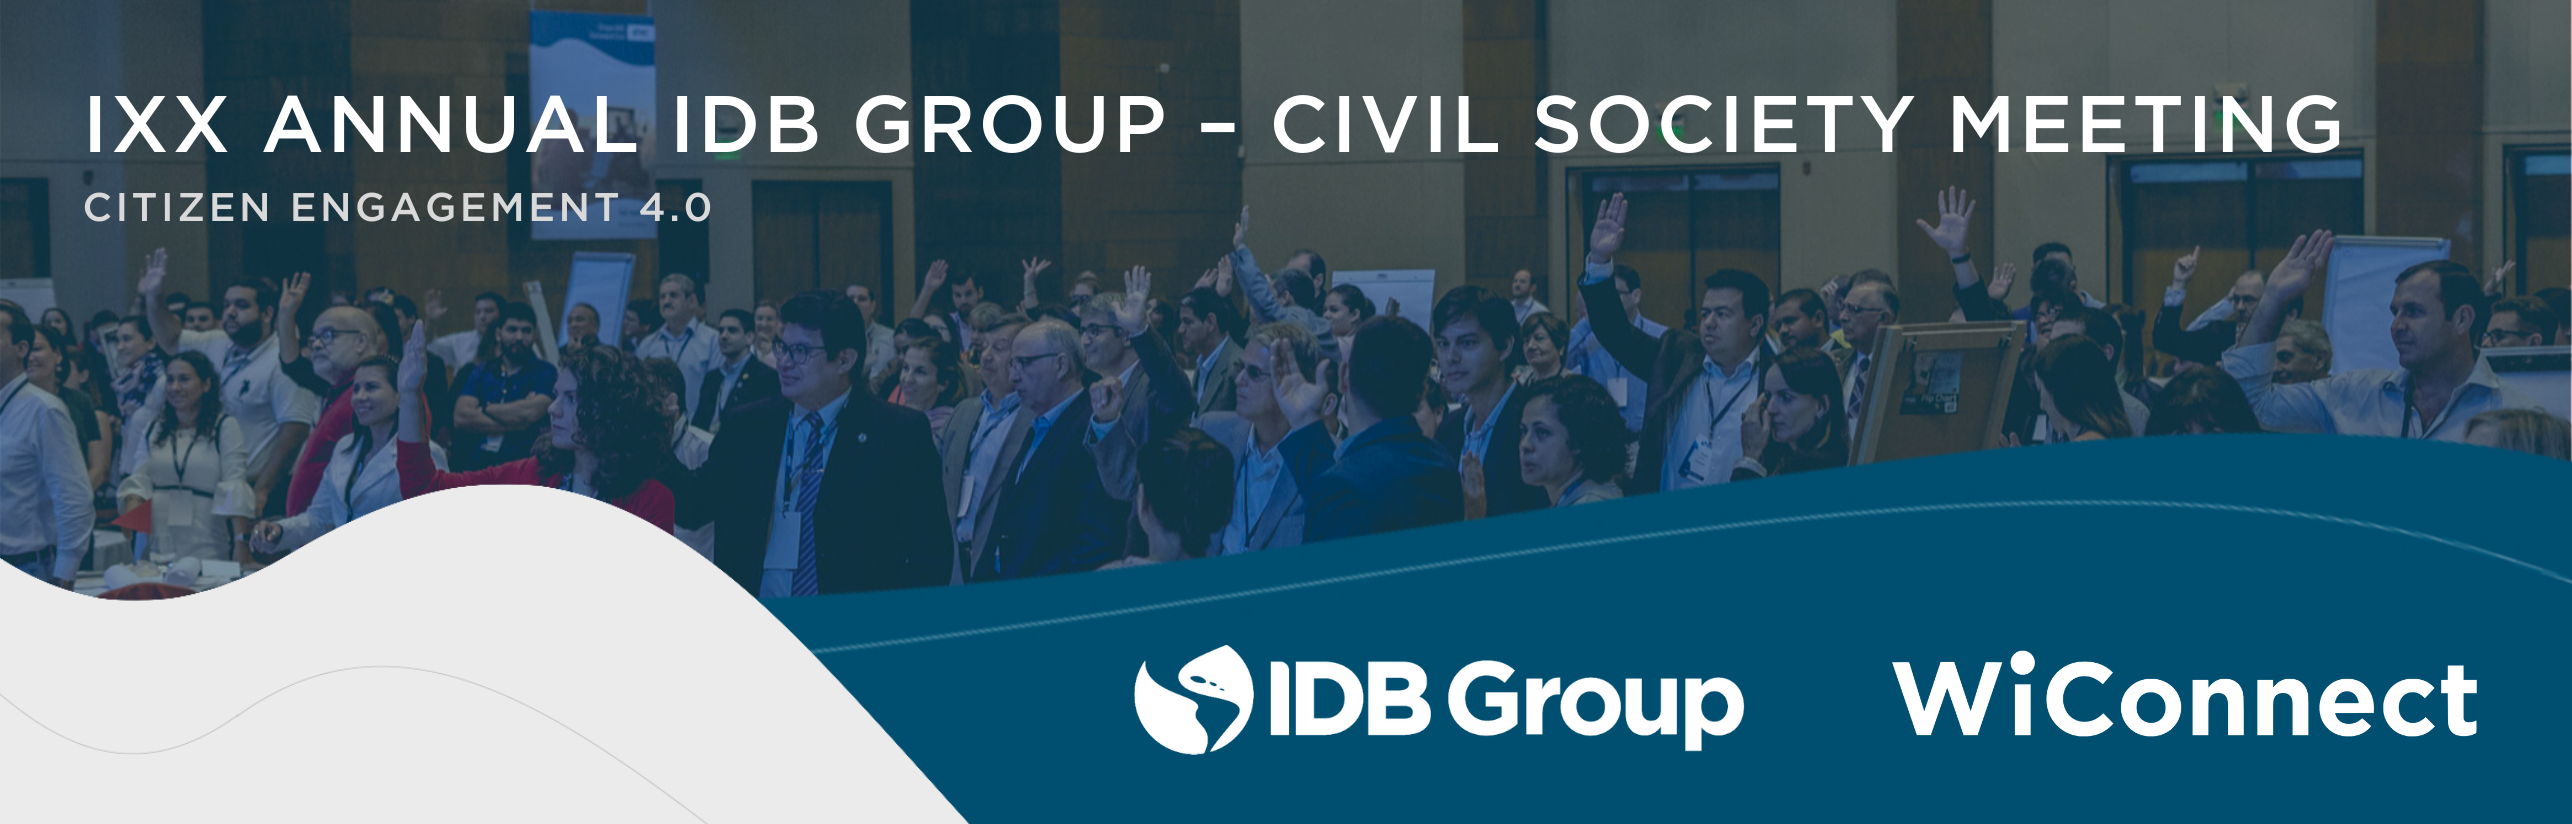 IXX Annual IDB Group - Civil Society Meeting: Citizen Engagement 4.0